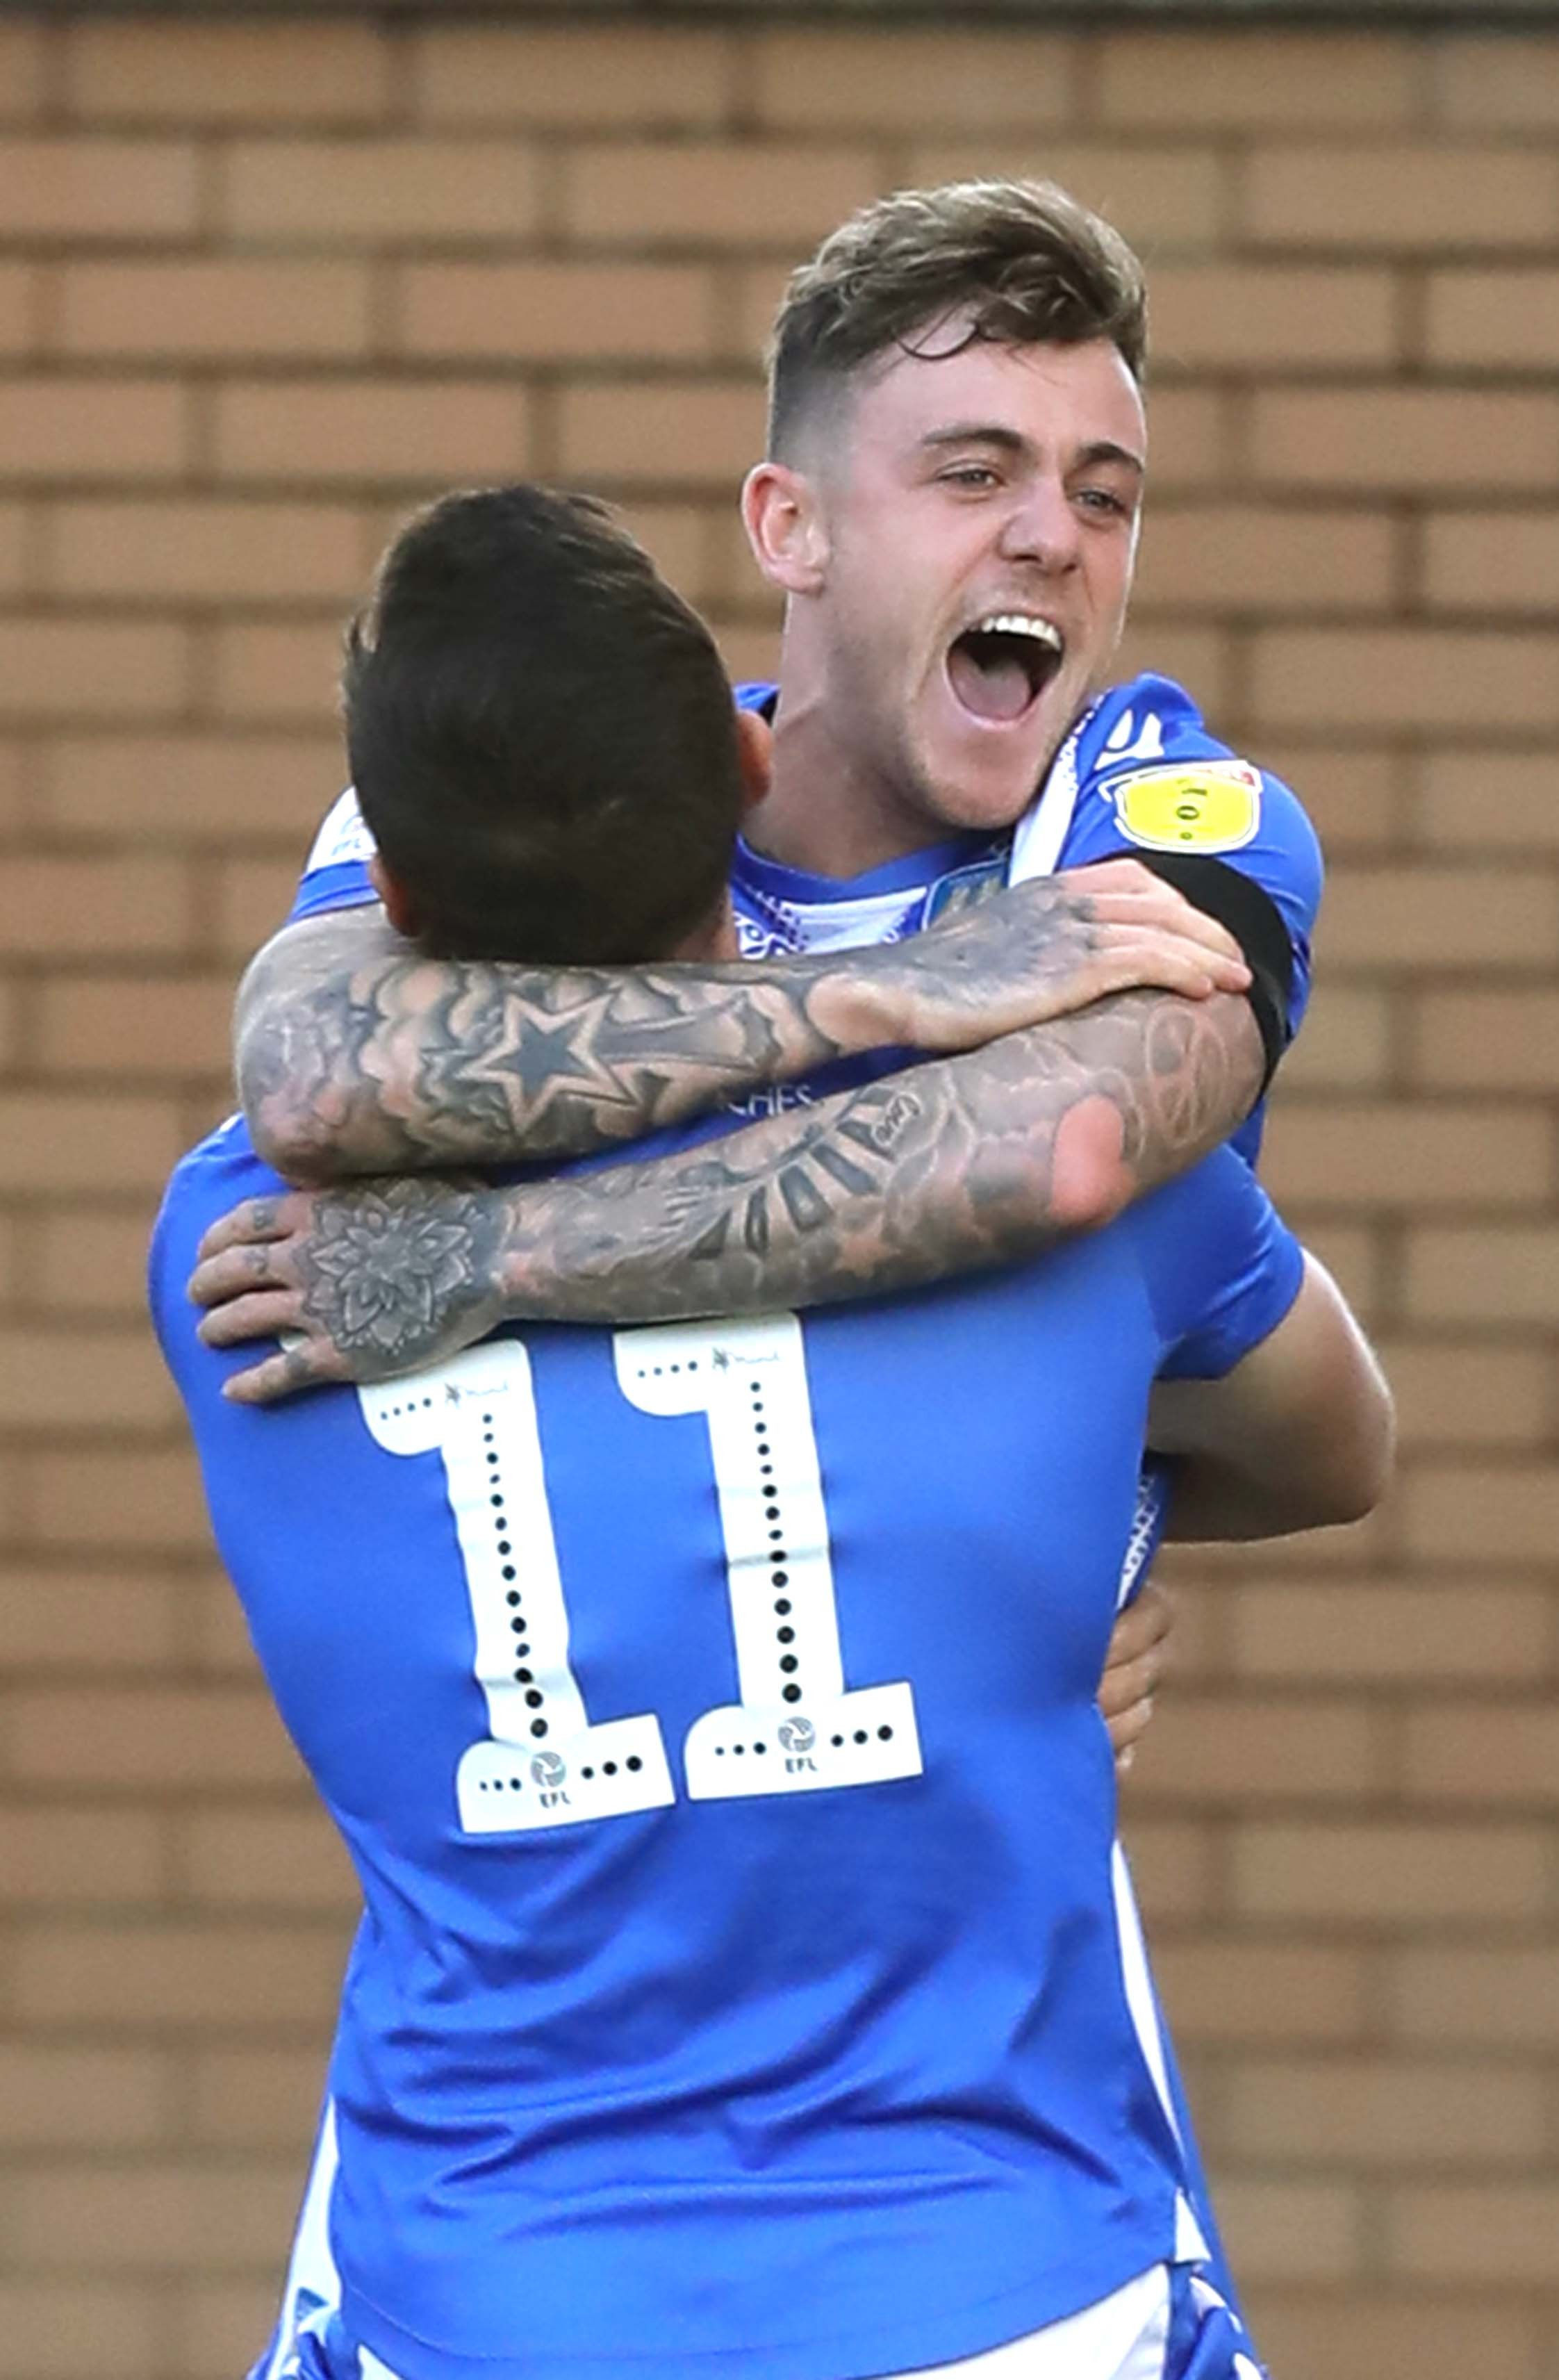 All smiles - Colchester United attacker Sammie Szmodics celebrates his goal with team-mate Brennan Dickenson Picture: STEVE BRADING